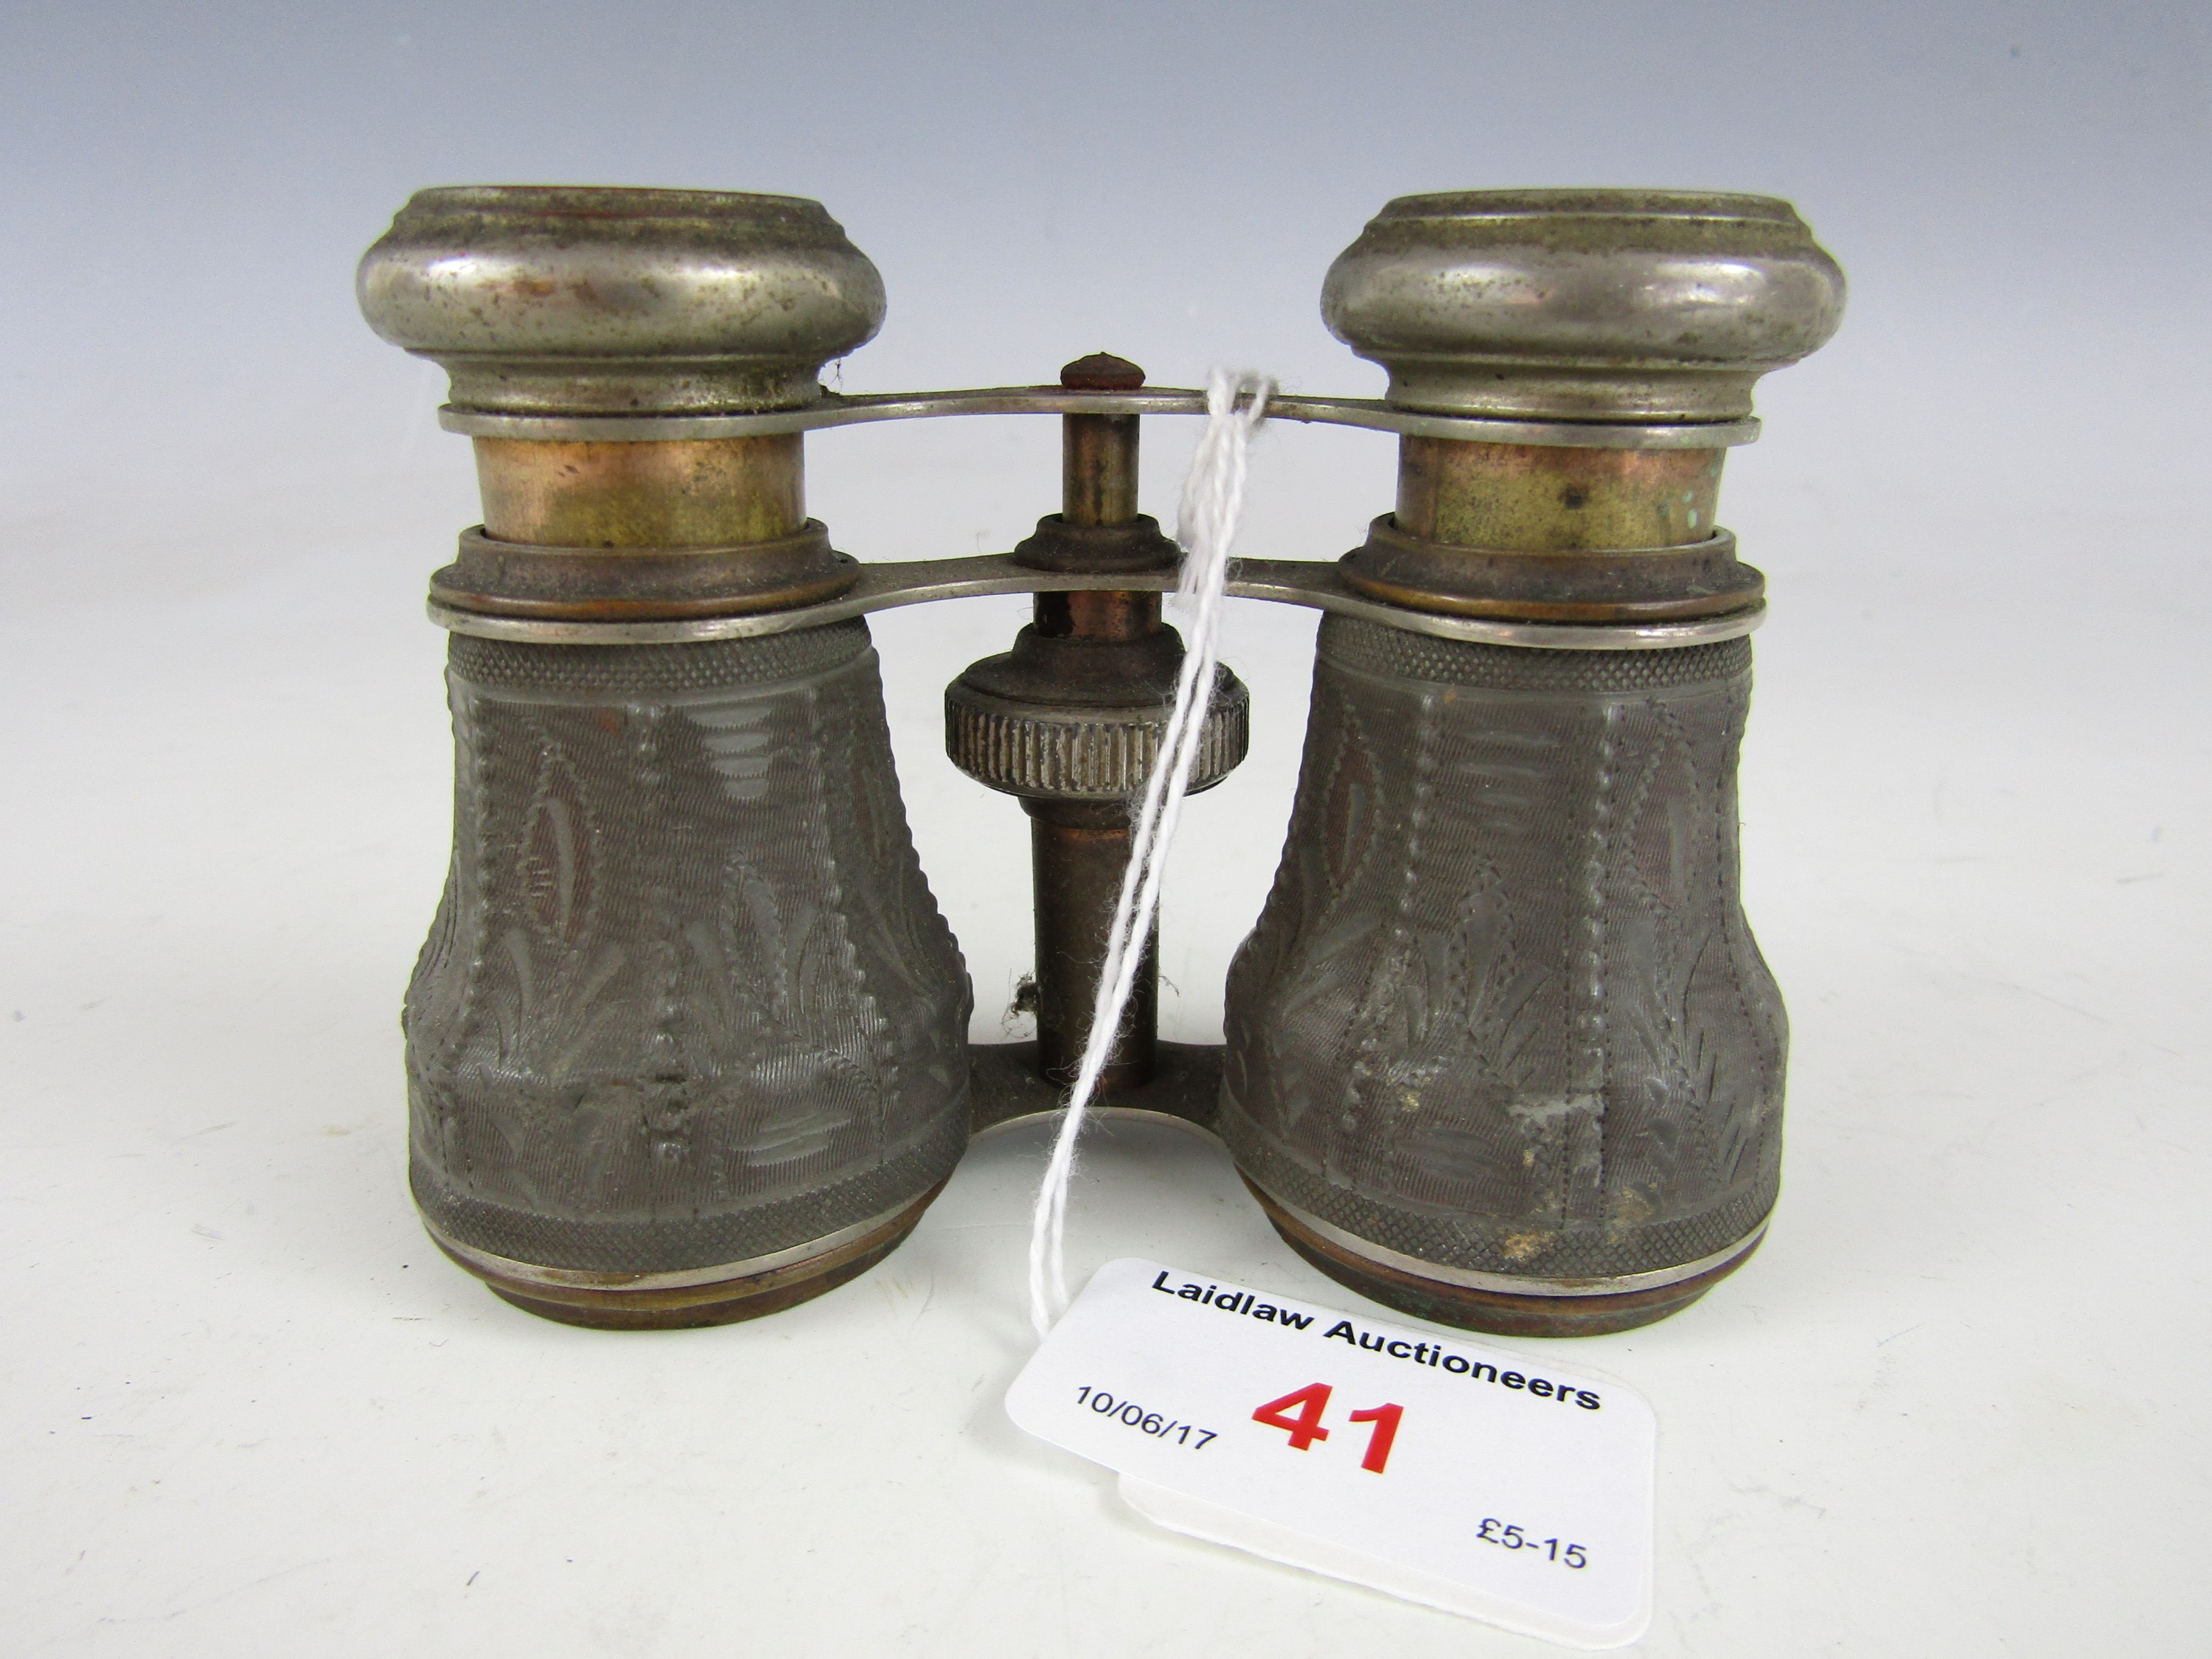 Lot 41 - A pair of 19th Century opera glasses with carved decoration to the body